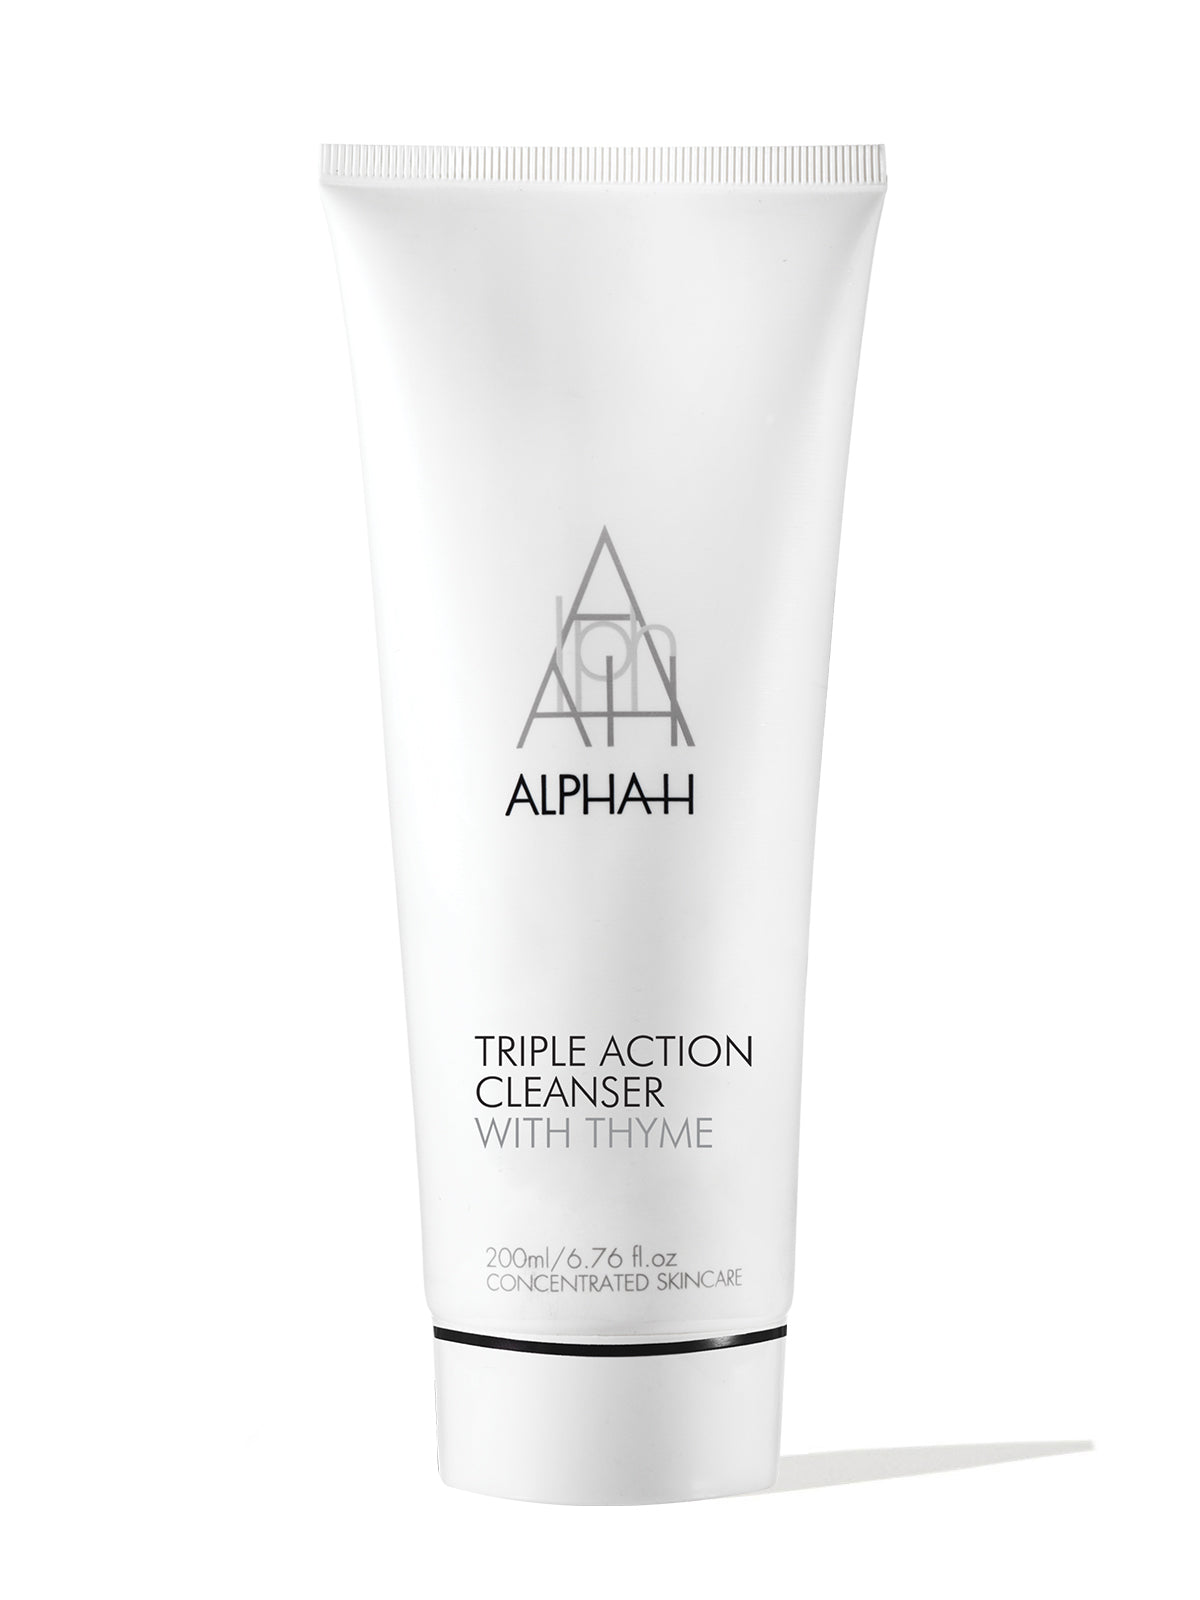 Large Triple Action Cleanser with Thyme